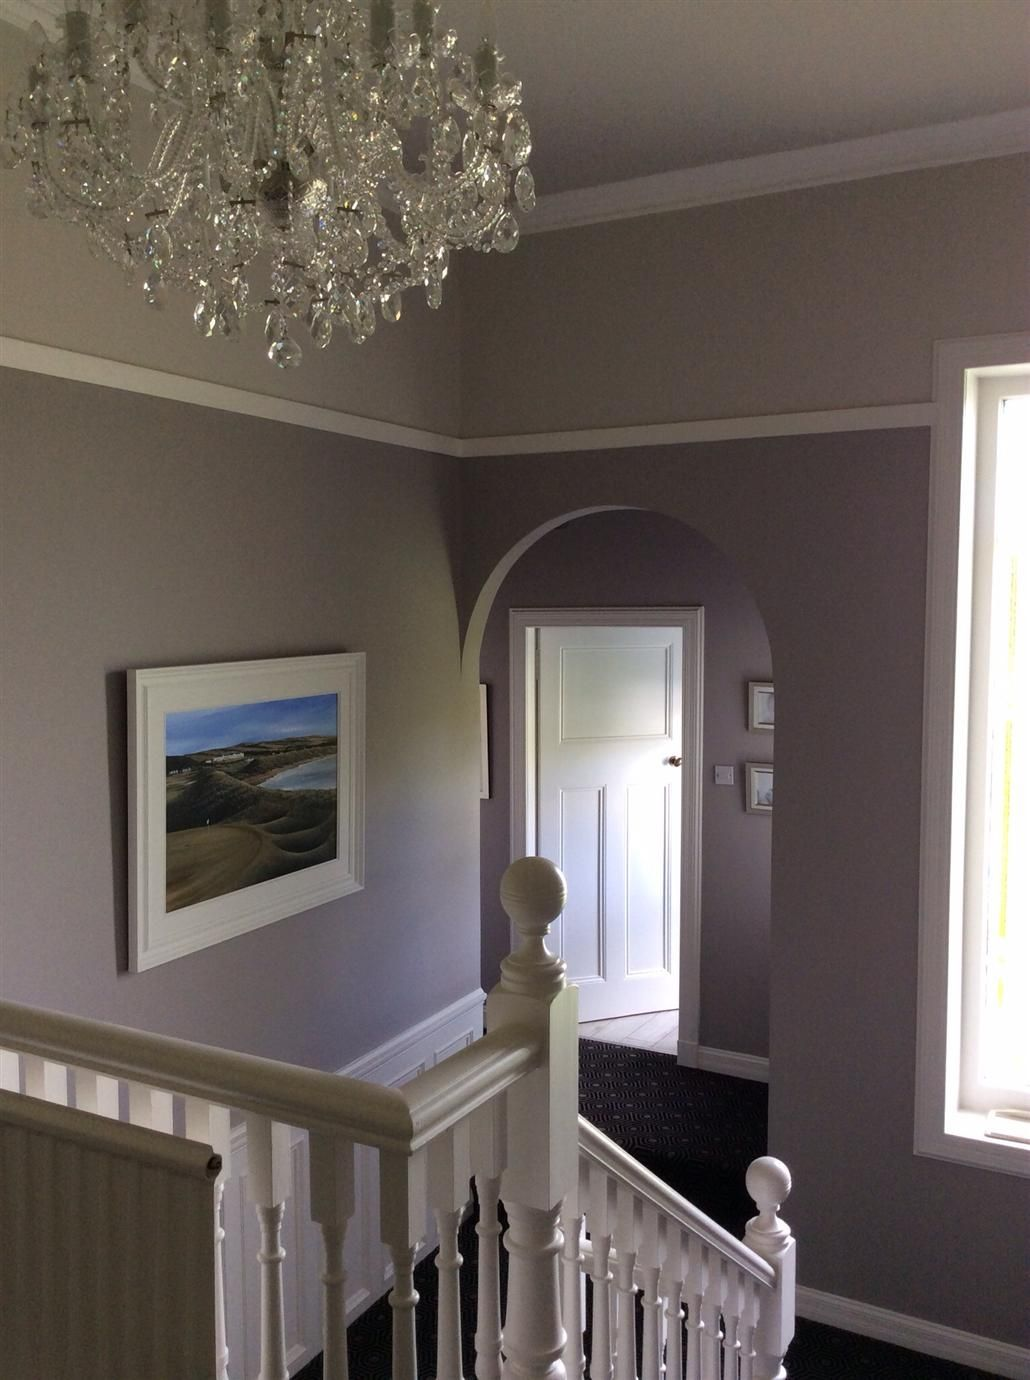 Farrow And Ball Skimming Stone Dove Tale And Skimming Stone Farrow And Ball Inspiration